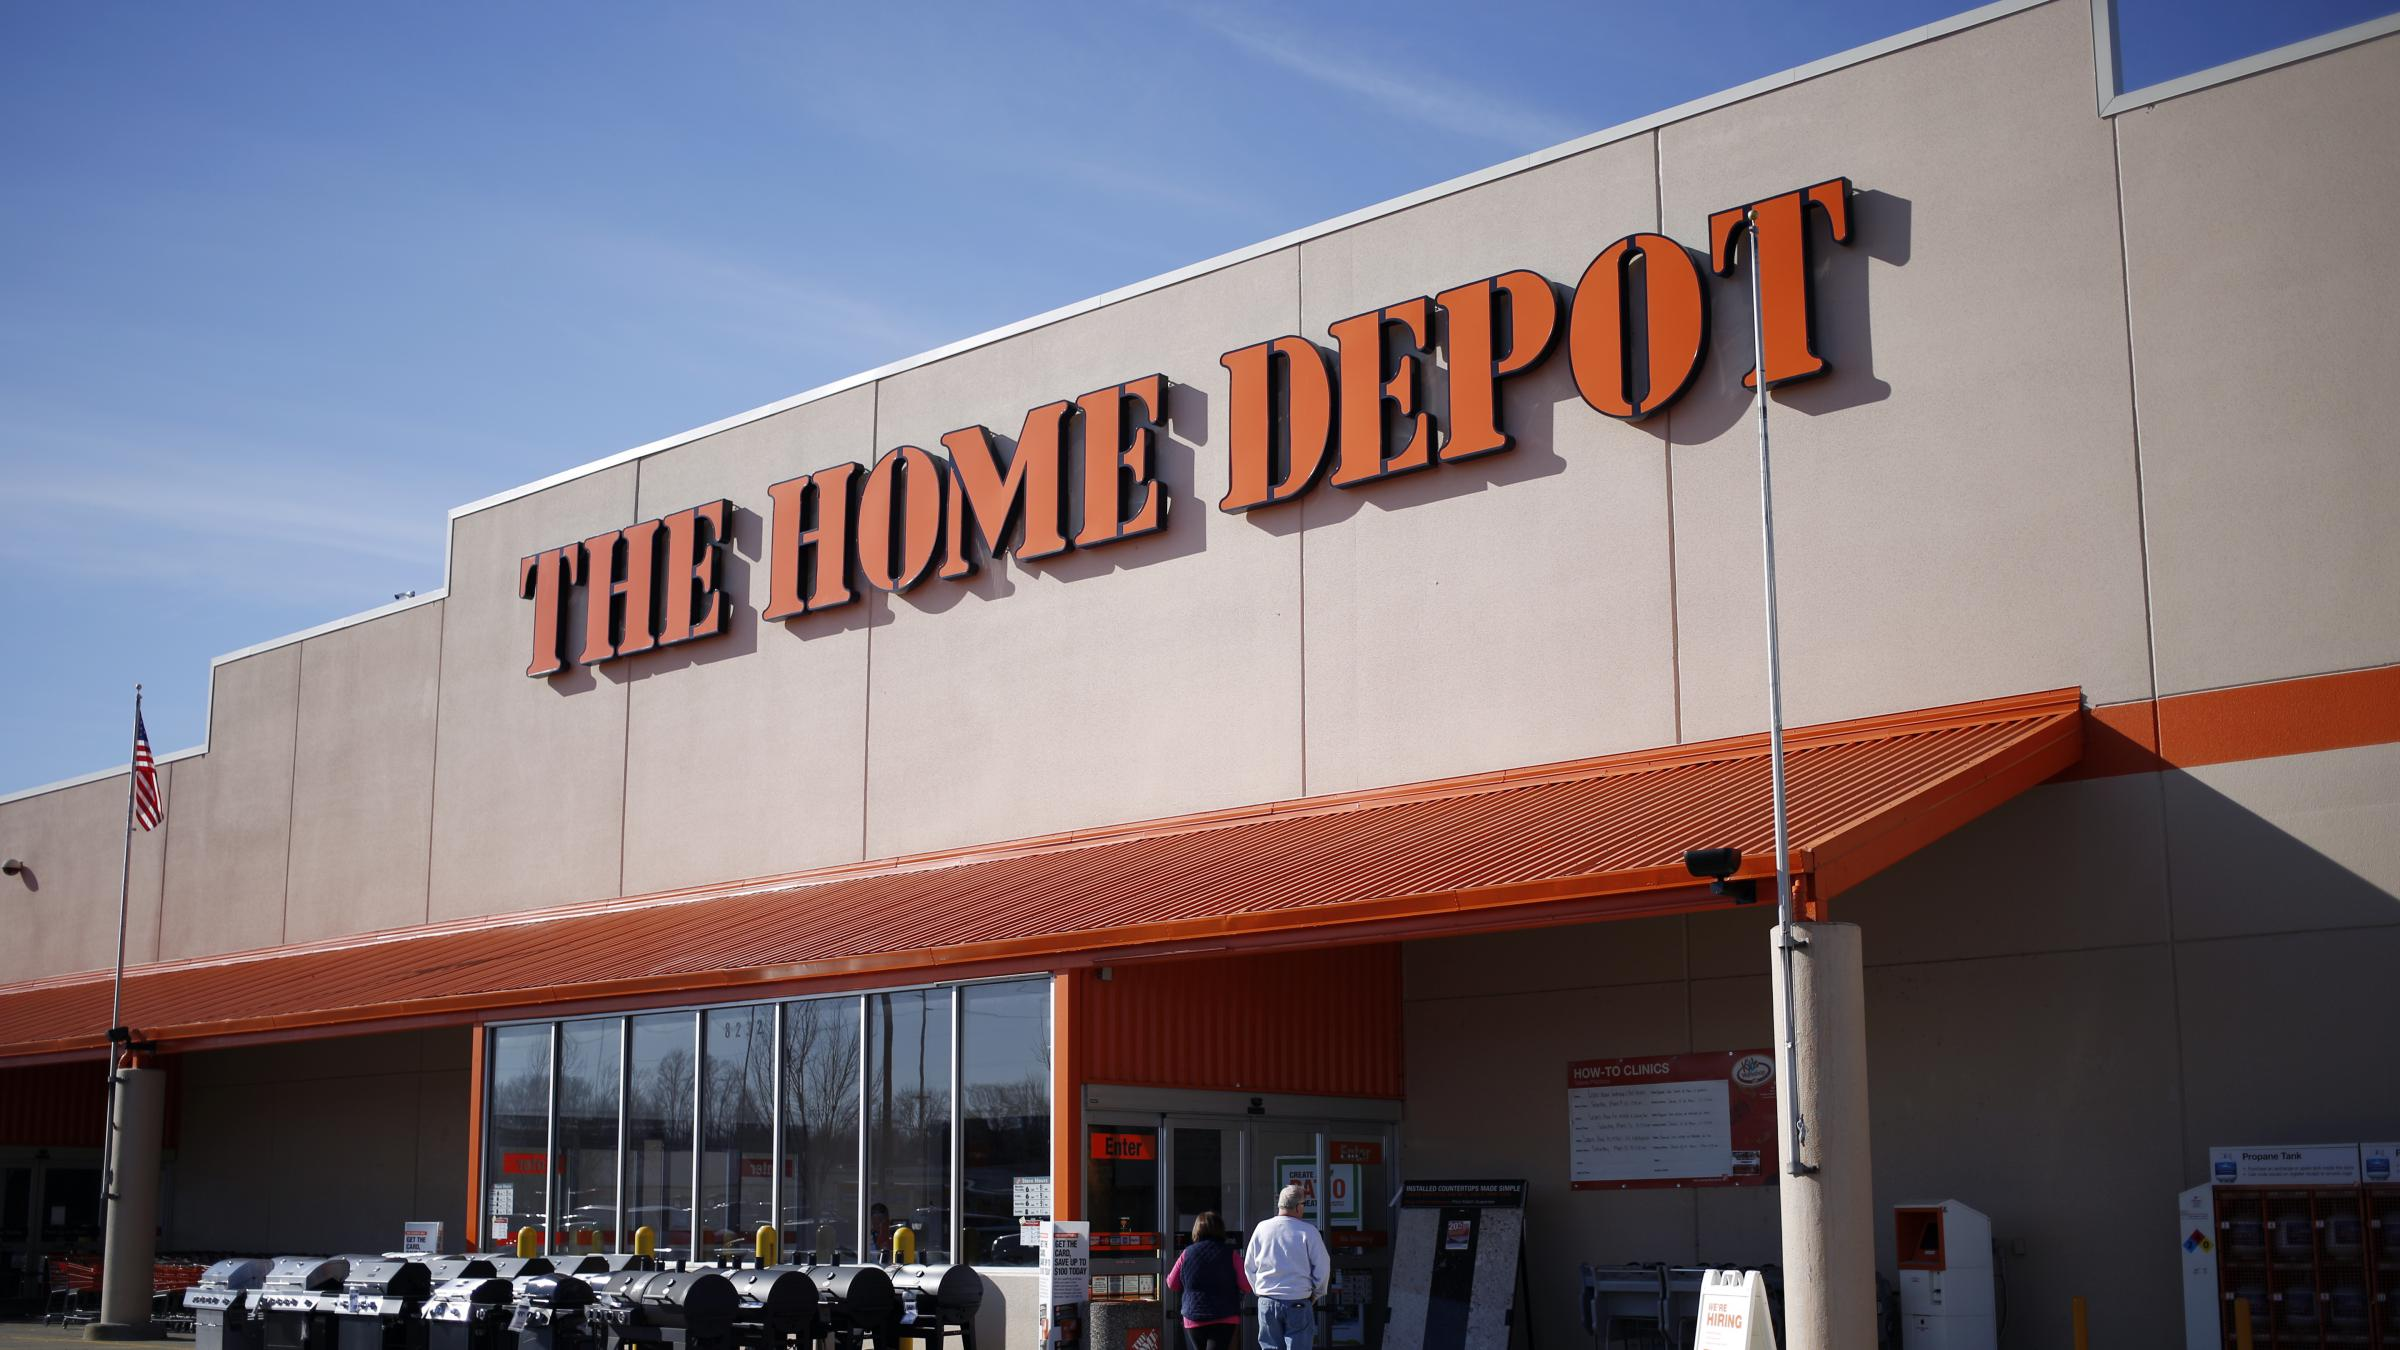 Home Depot Responds To Calls For Boycott Over Co-Founder's Support on mobile home parts, mobile home ship, mobile home barn, mobile home house, mobile home company, mobile home bunker, mobile home site, mobile home base, mobile home building, mobile home fort, mobile home desert, mobile home delivery, mobile home remodeling, mobile home camp, mobile home hotel, mobile home supplies, mobile home doors, mobile home unit, mobile home rail, mobile home supply,